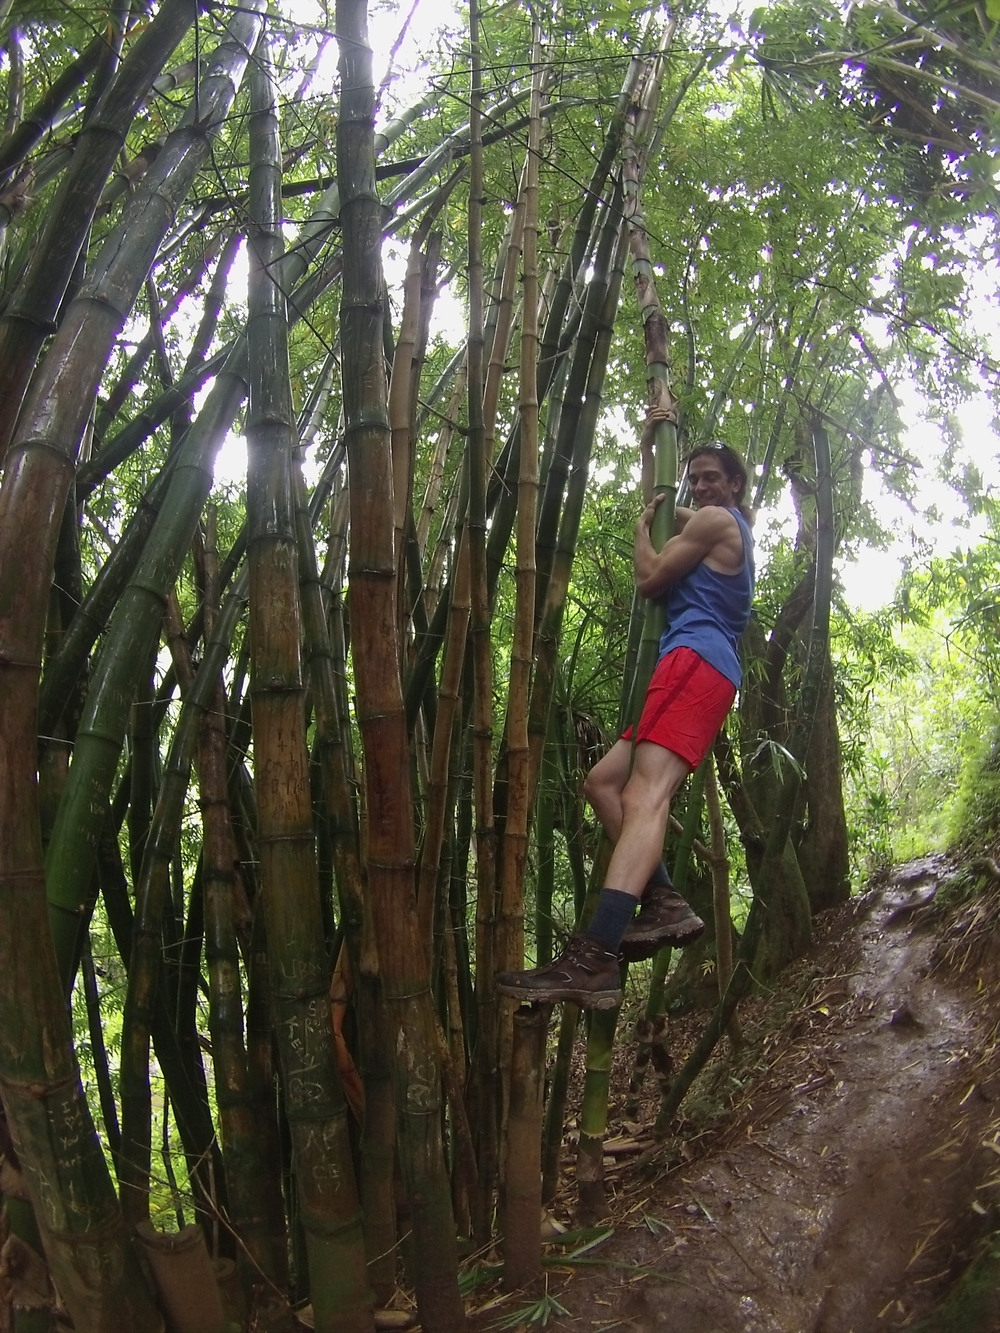 climbing a bamboo tree, just because